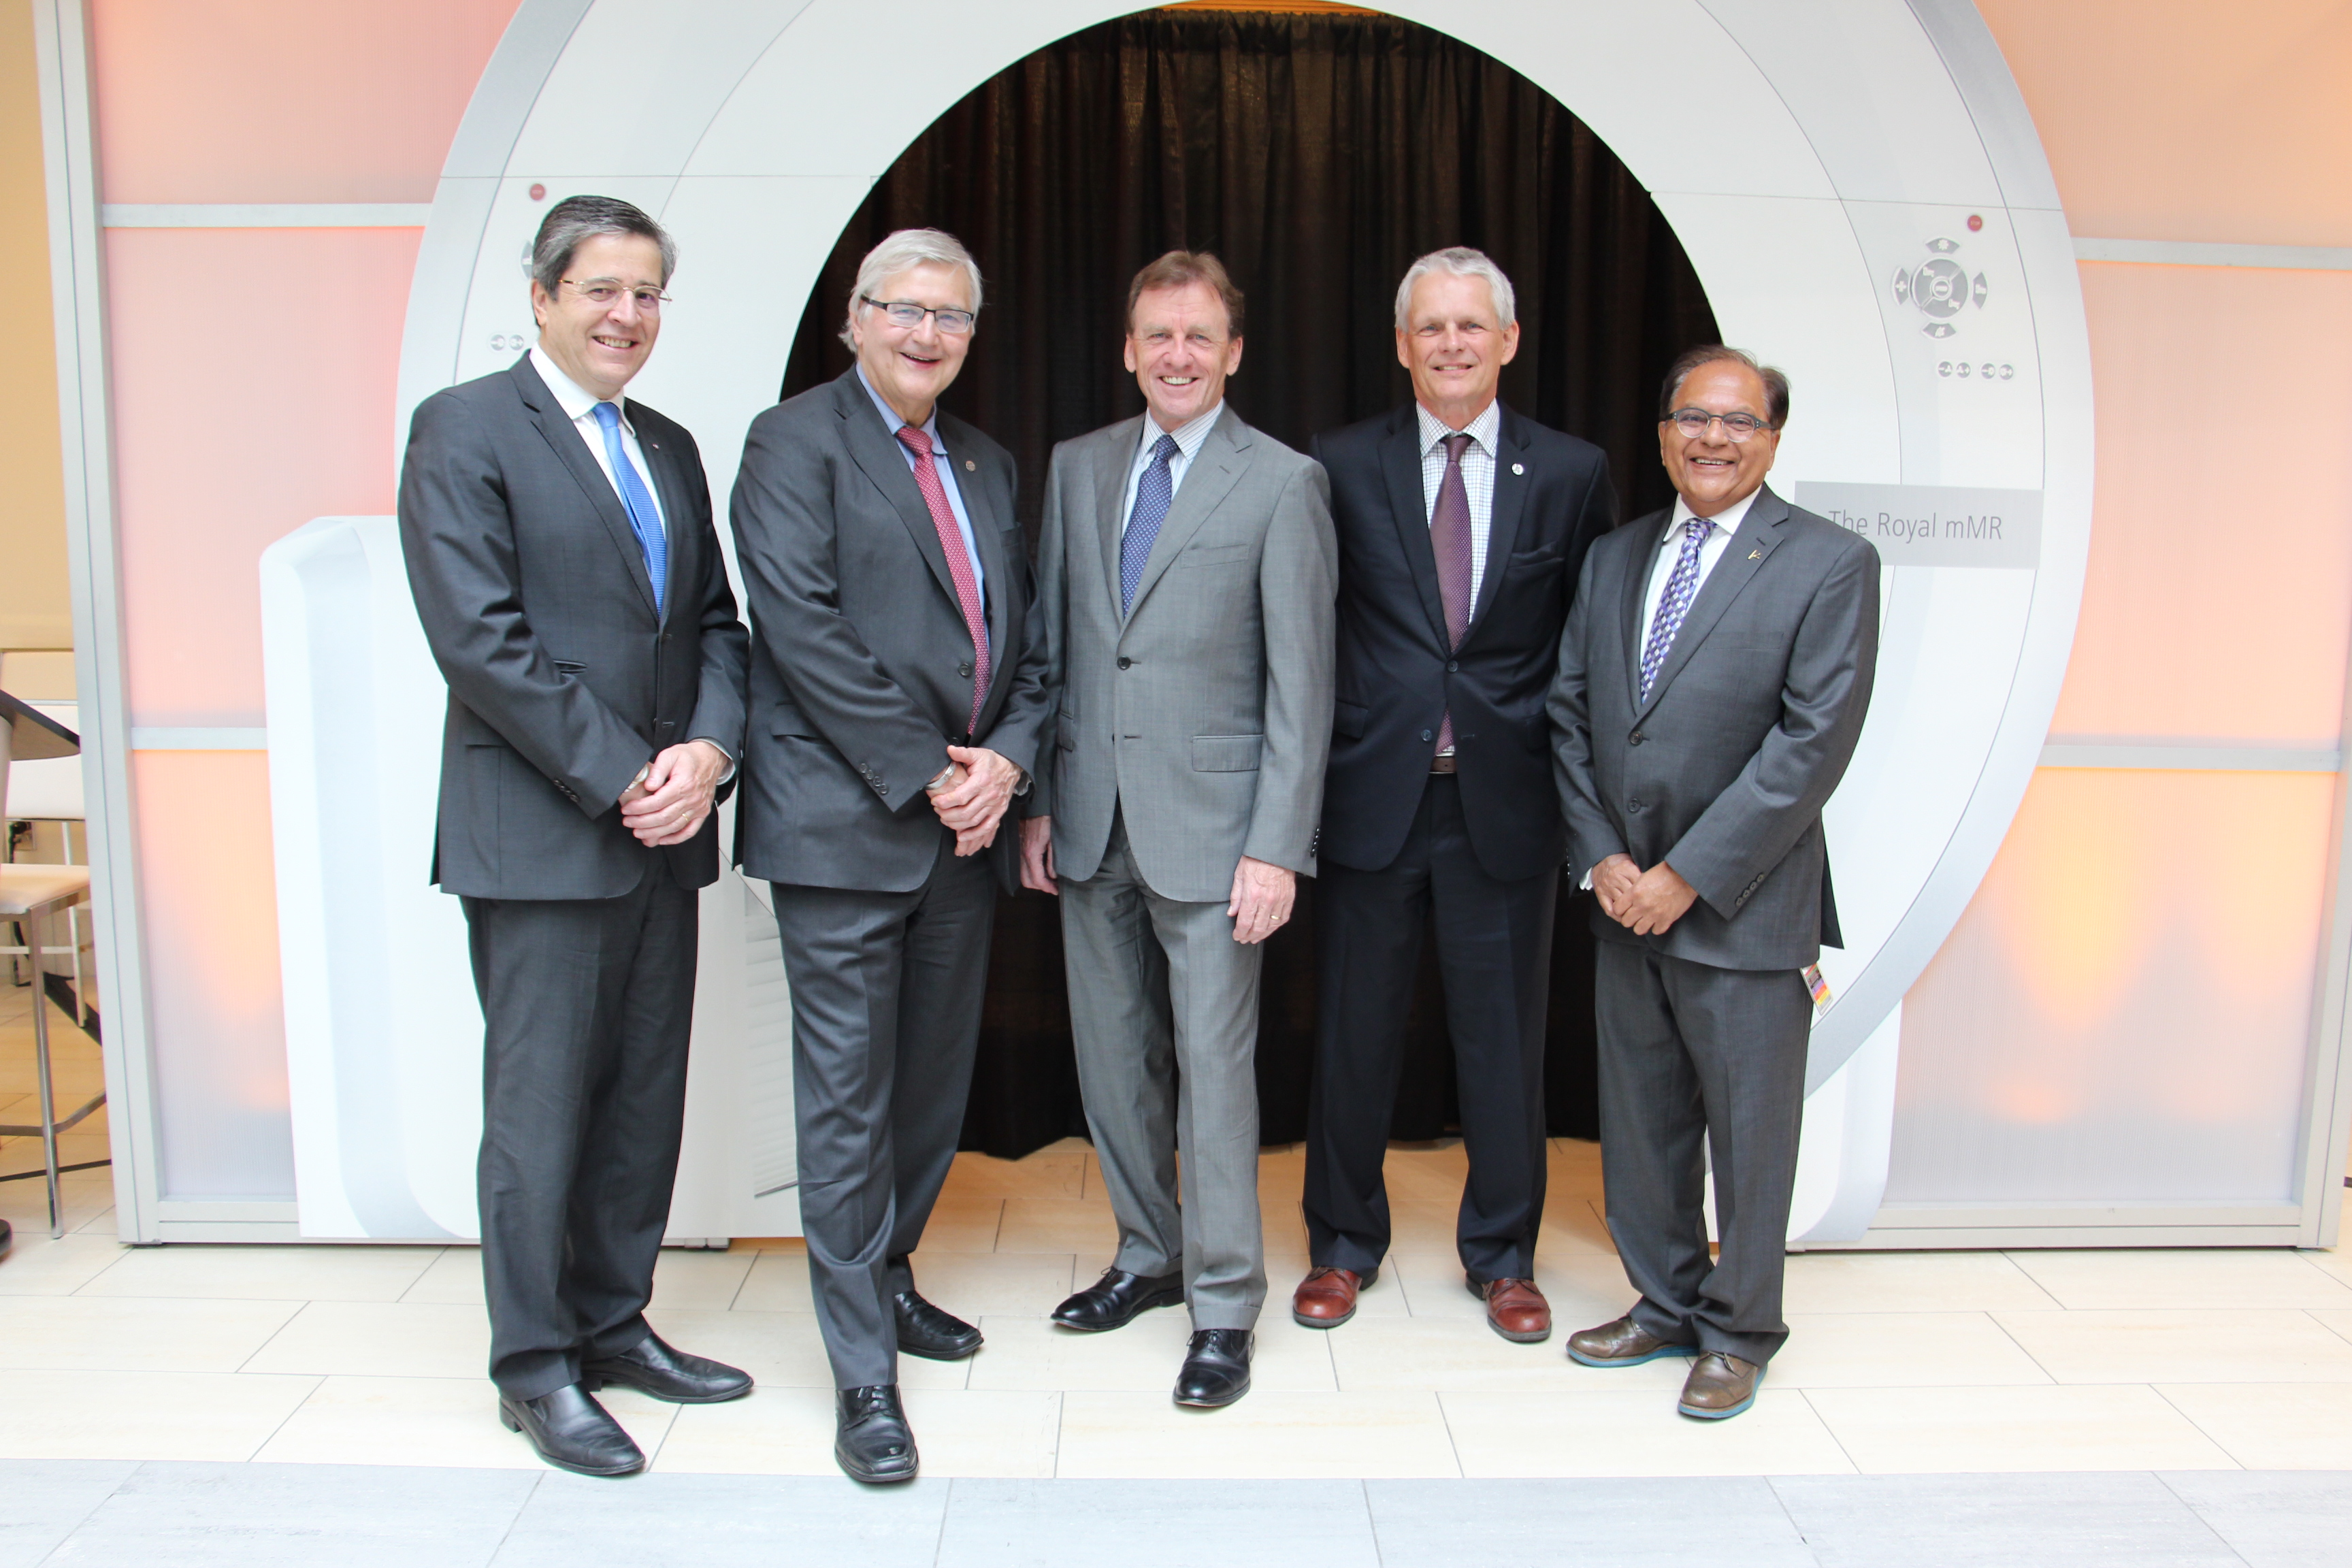 Dignitaries stand together in front of a MRI machine backdrop.